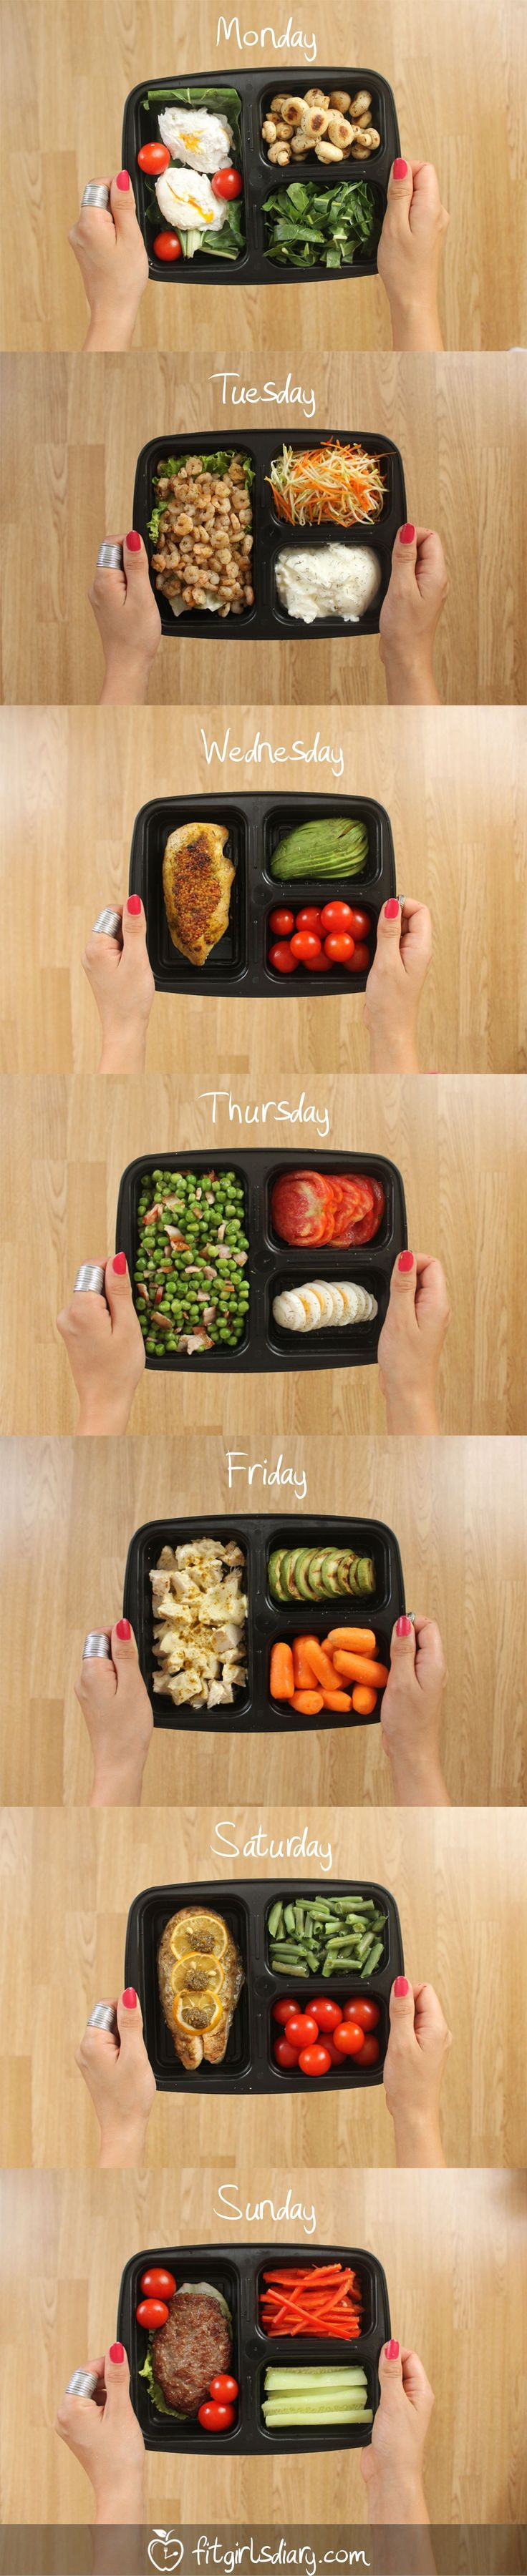 7 Days Of Healthy Meal Prep Ideas – Ready To Eat Meals and Protein On The Go…